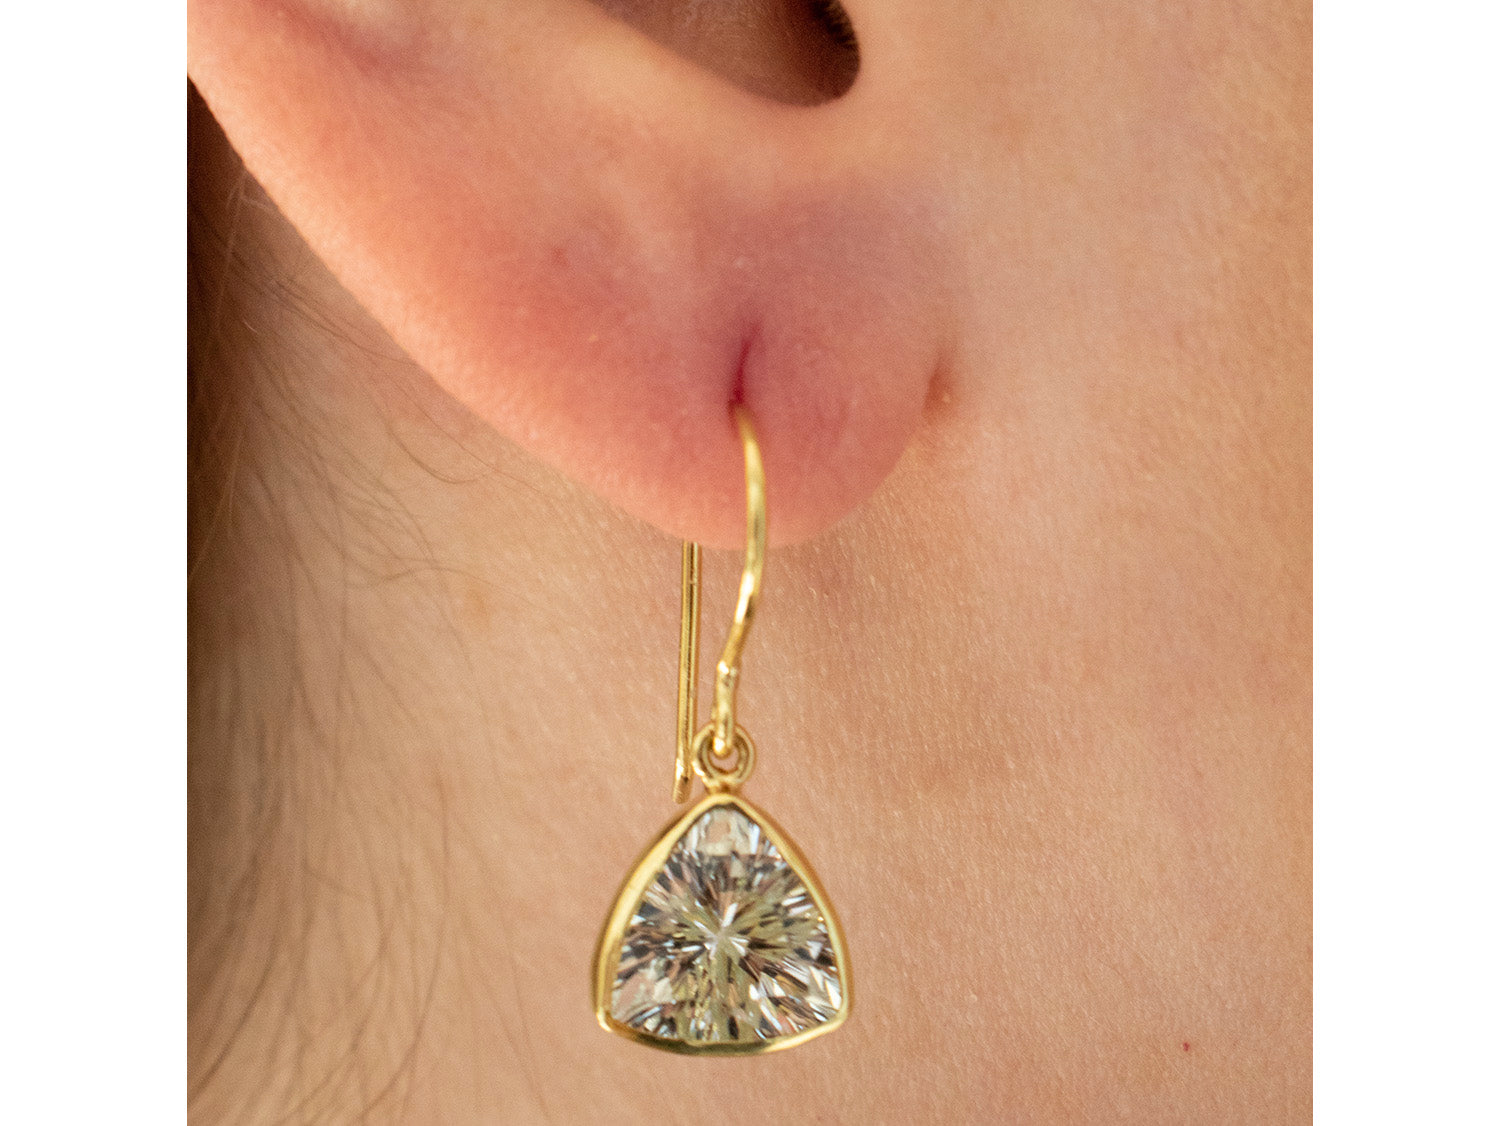 18K Yellow Gold, Sterling Silver and White Topaz Earrings in Washington DC